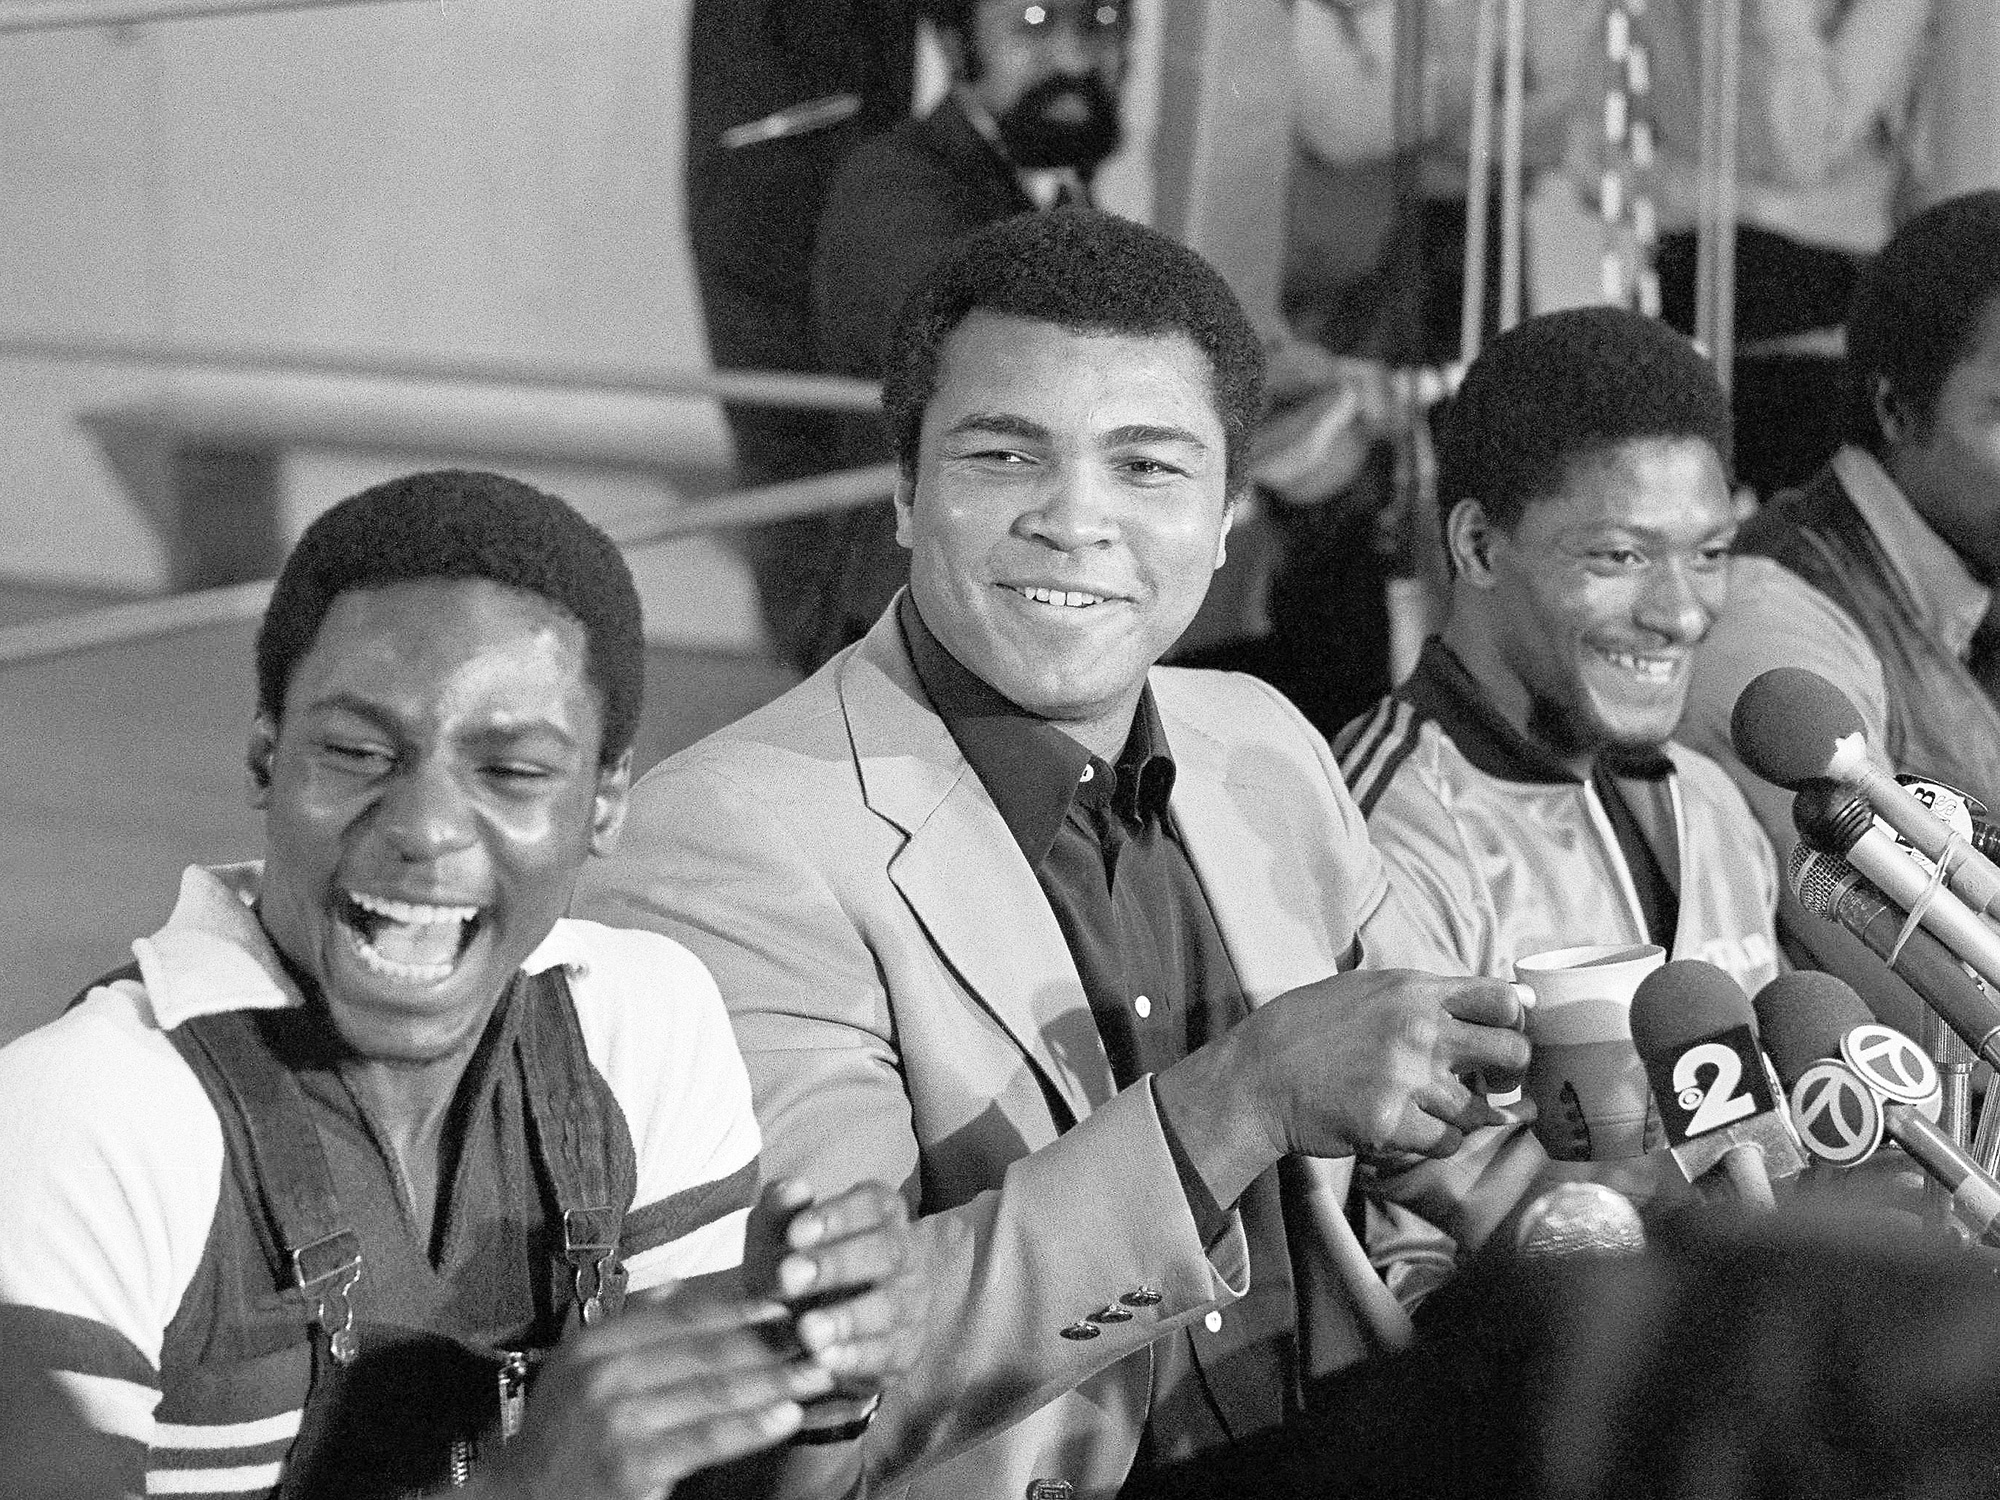 Muhammad Ali bought a one-story brick home for Houston McTear (right) and his family in 1976.